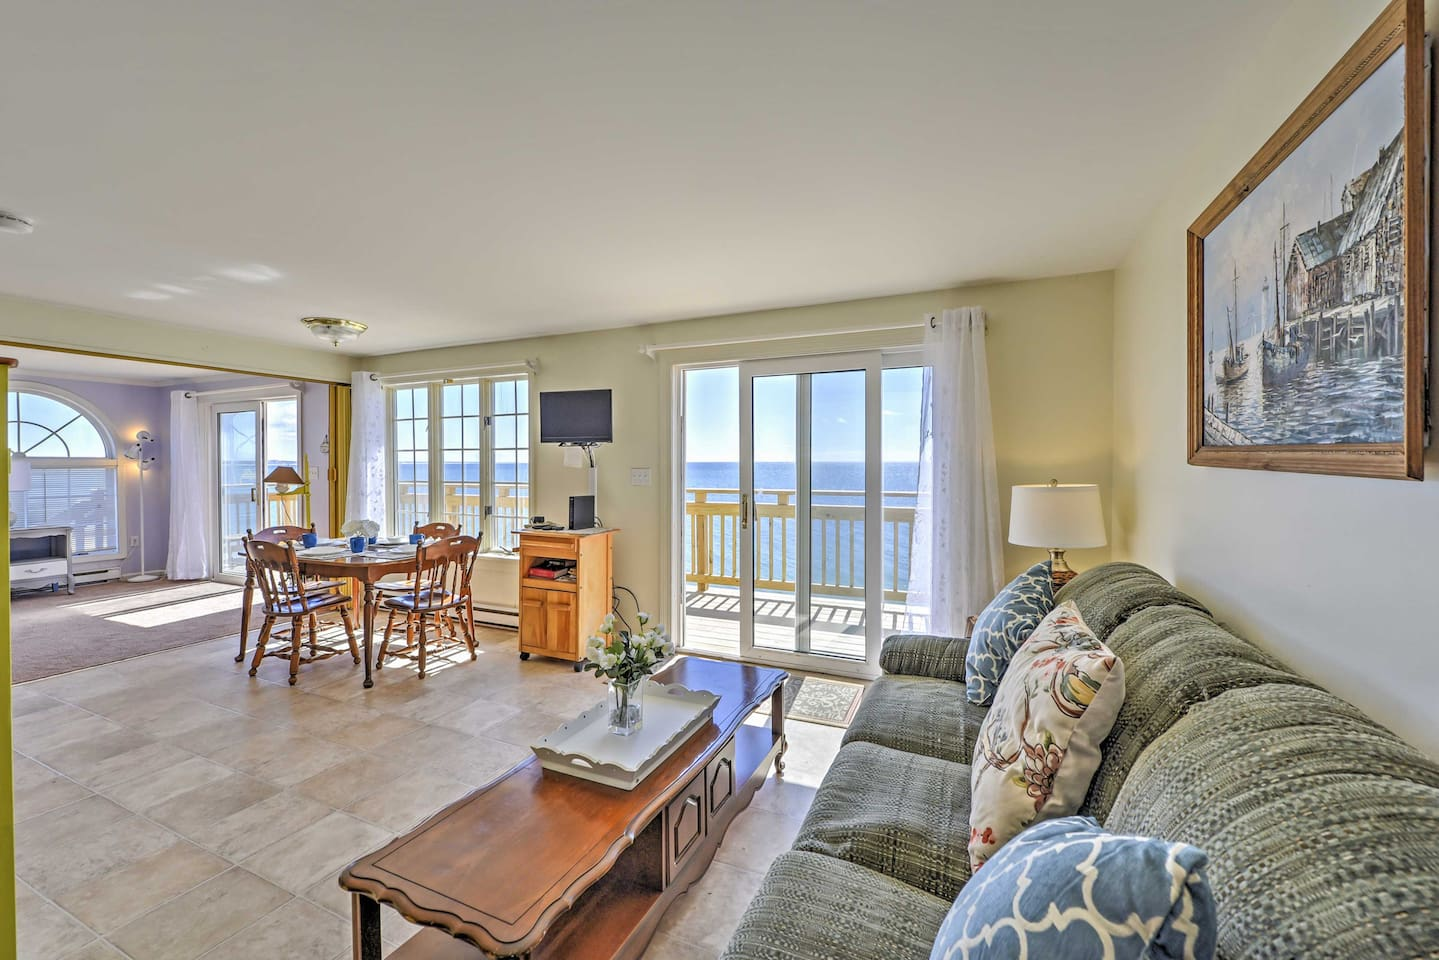 Enjoy everything about this vacation rental home in Truro!